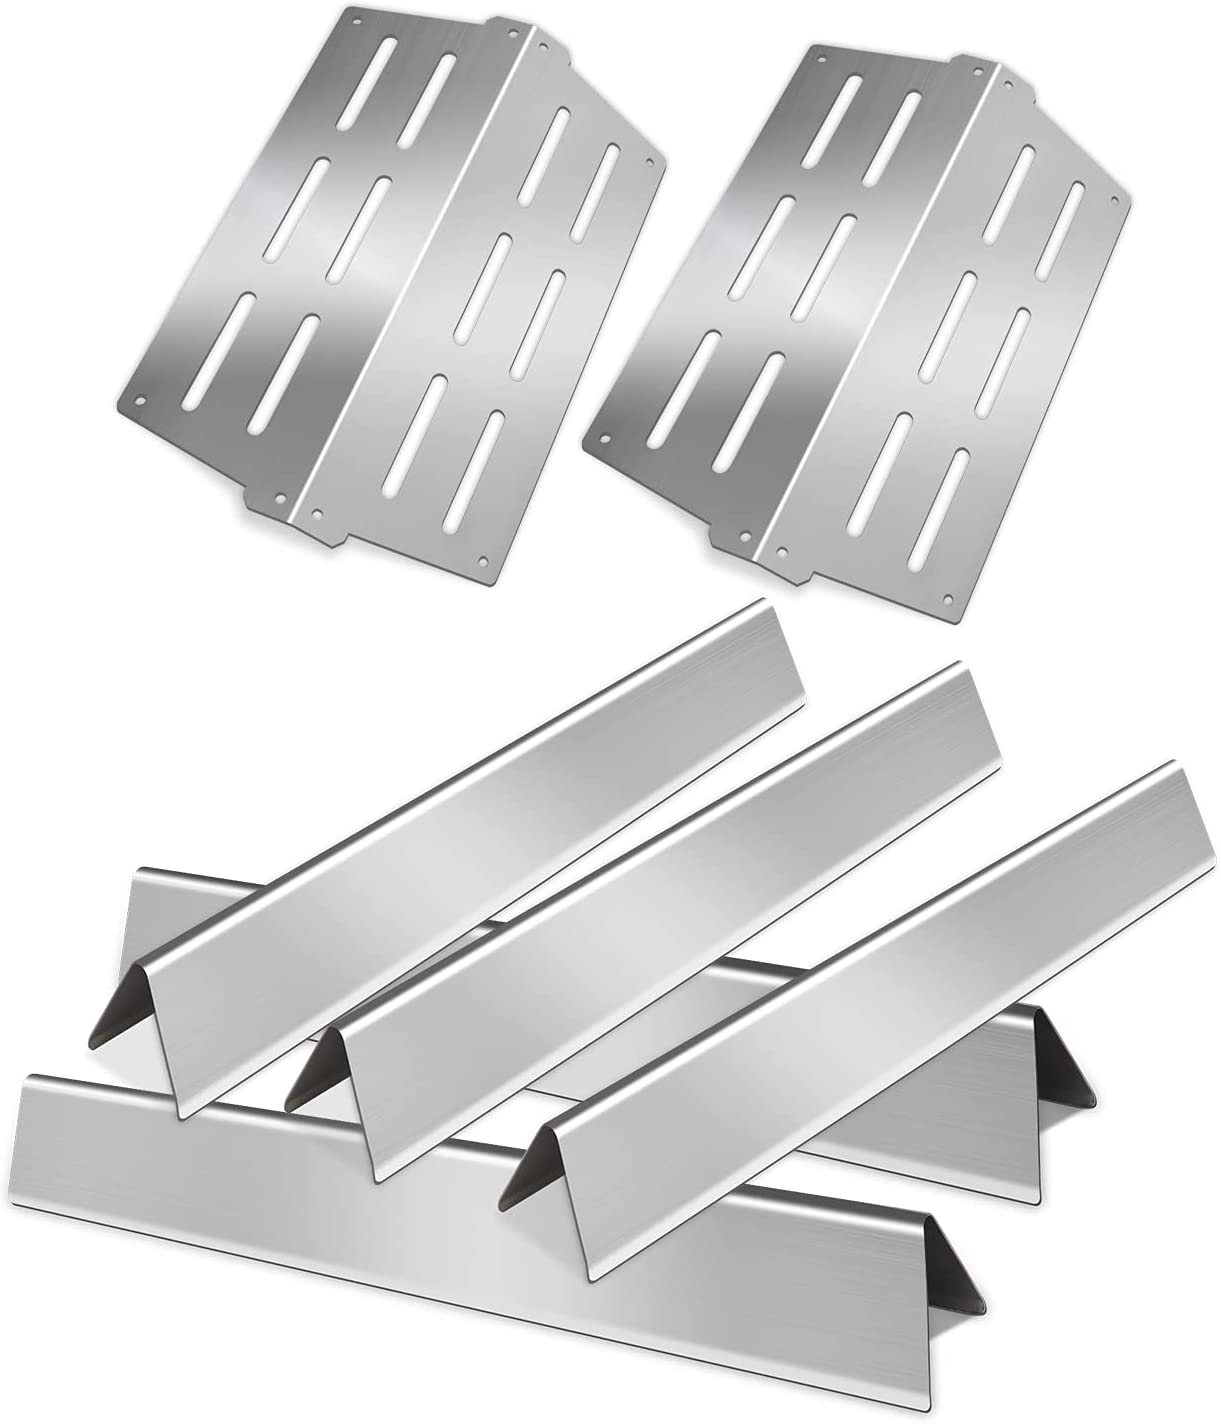 Zemibi Grill Repair Replacement Parts for Weber Genesis 300 Series Grills E310 E320 E330 S310 S320 S330, BBQ 13 1/4